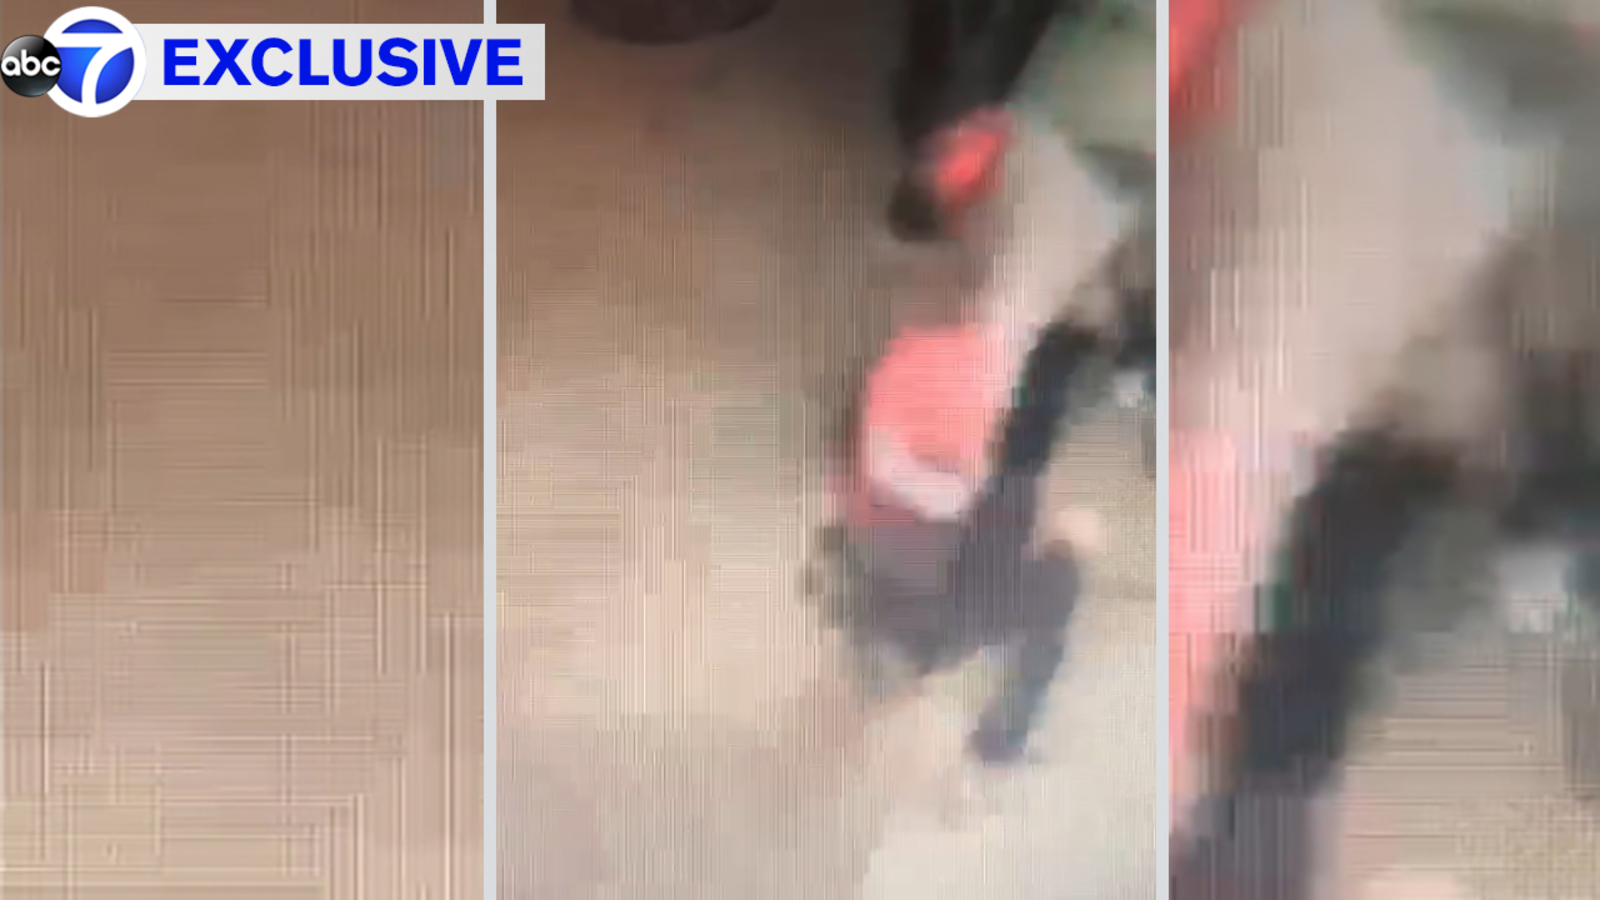 Video: Asian man beaten in unprovoked attack at NYC subway station